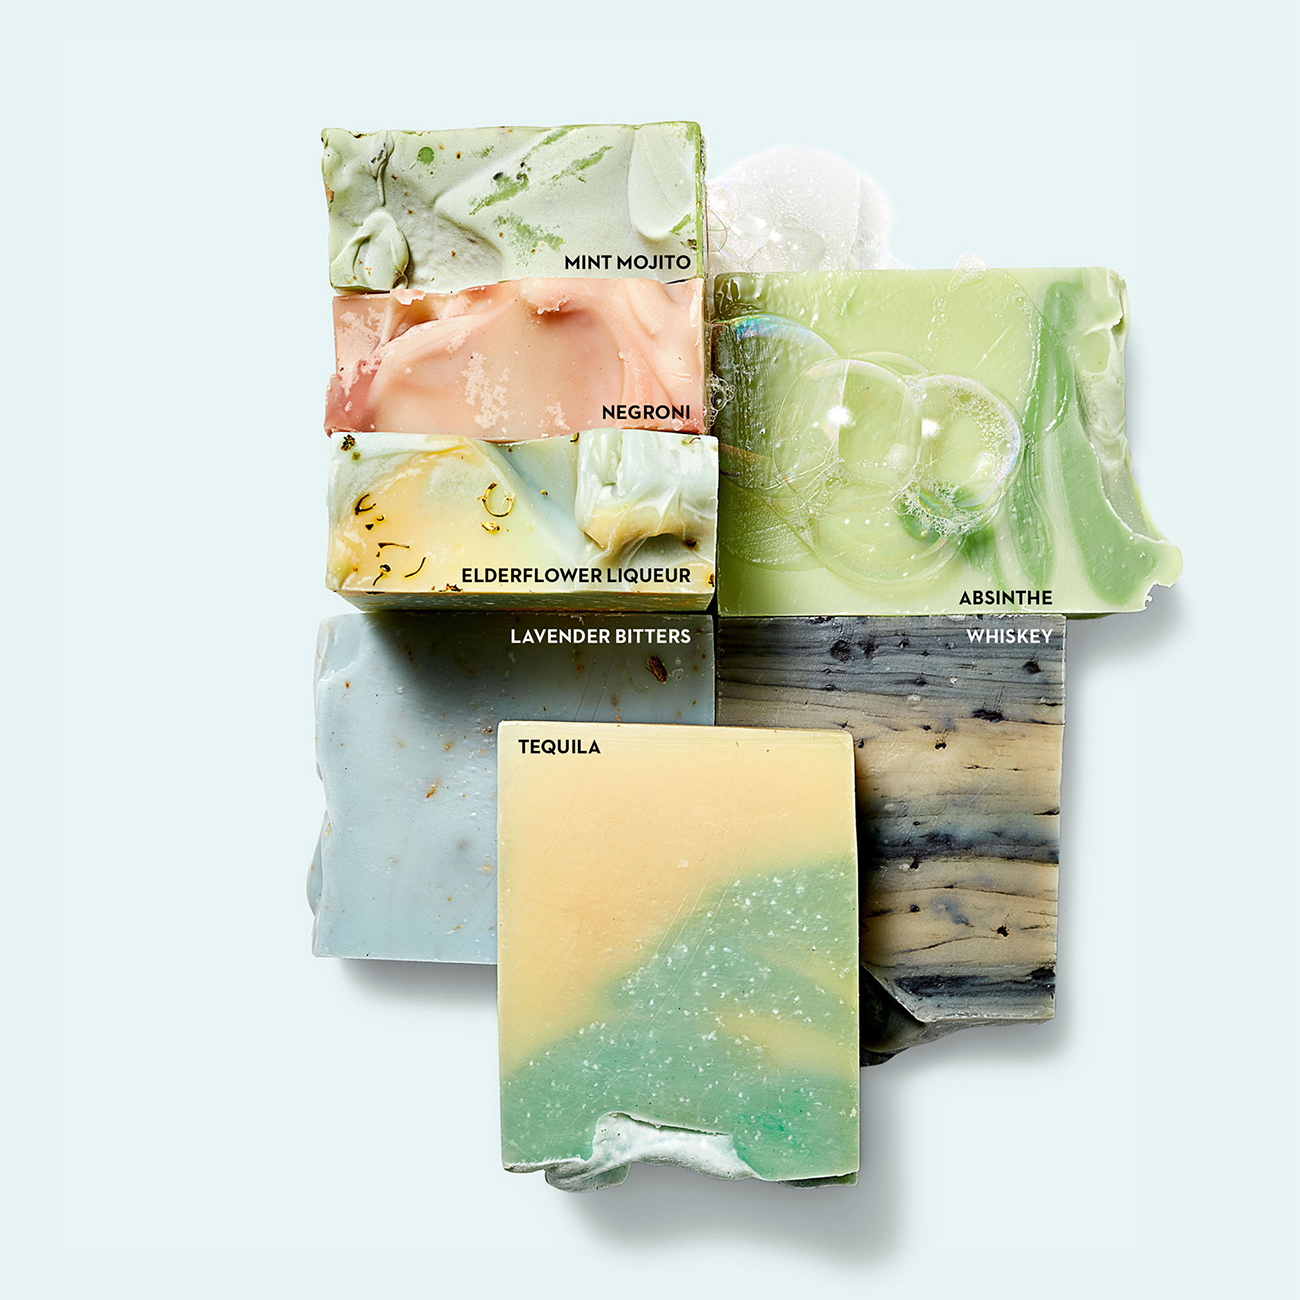 cocktail scented bars of soap